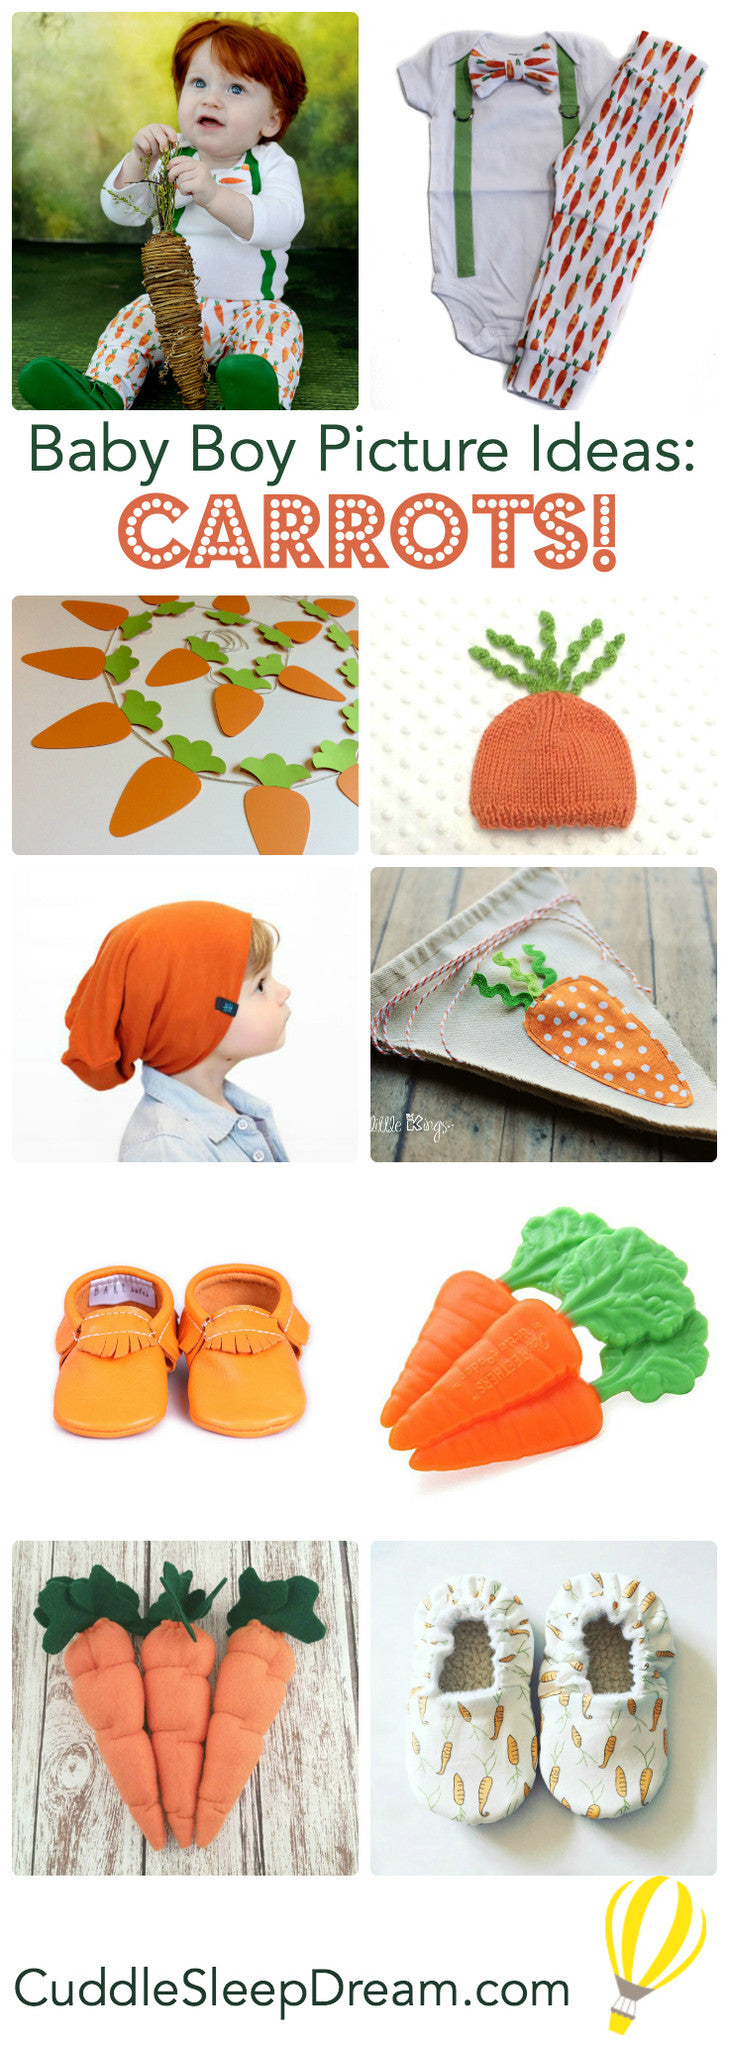 Baby boy easter picture ideas carrot theme photoshoot baby boy easter picture ideas carrots negle Images